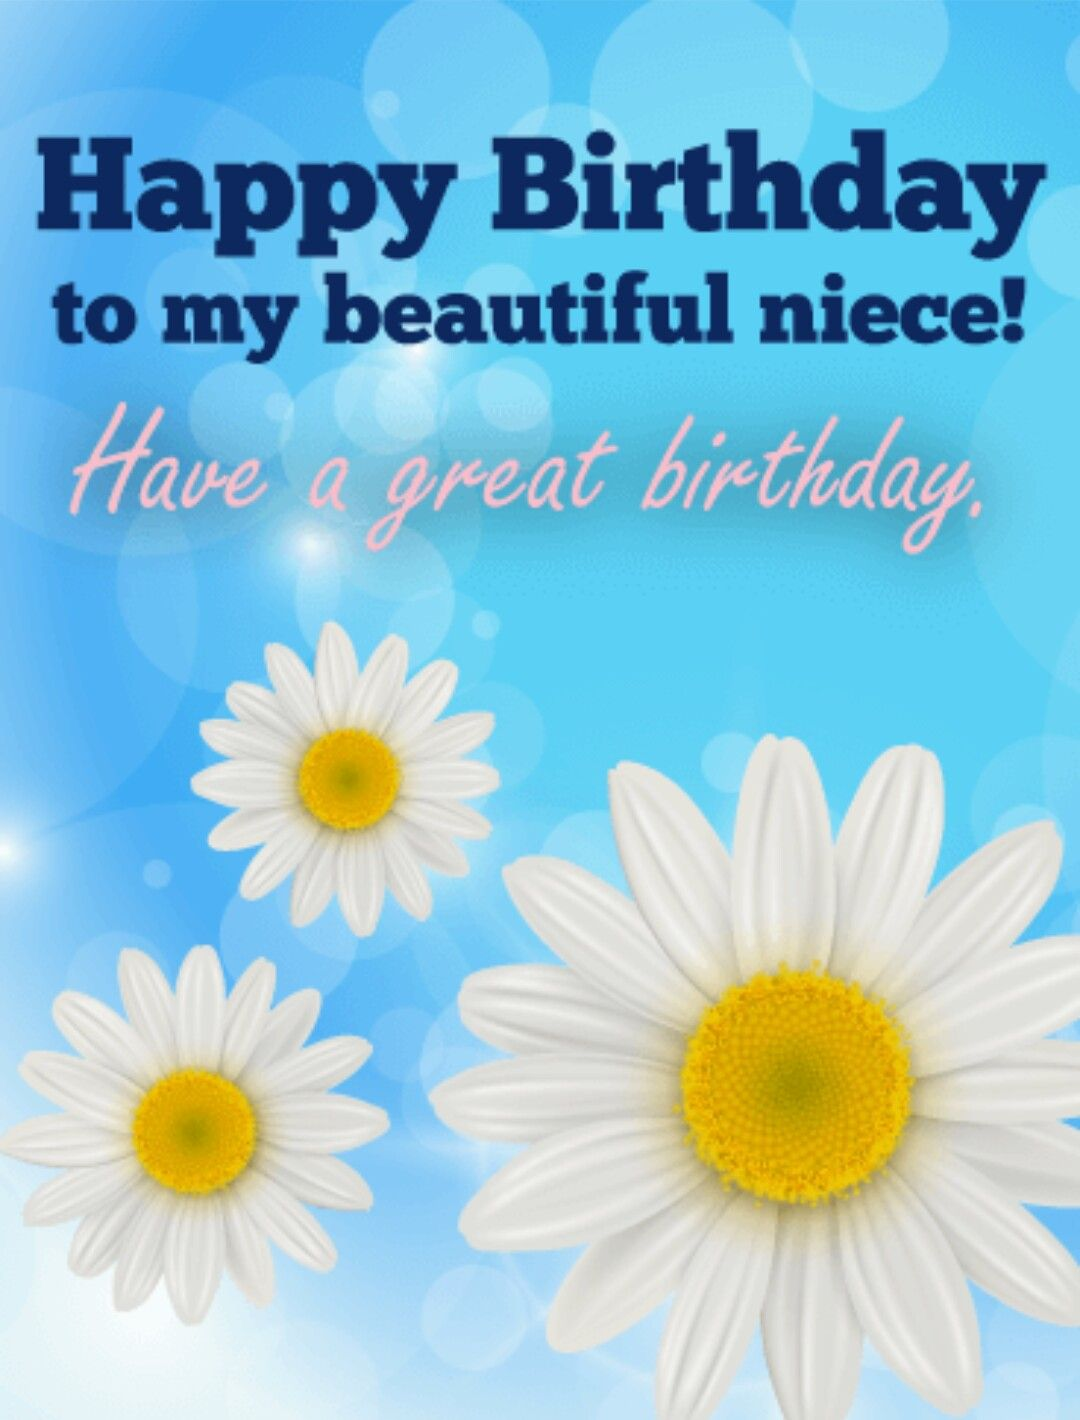 Pin By Suzanne Koopman On Abc Greeting Cards Pinterest